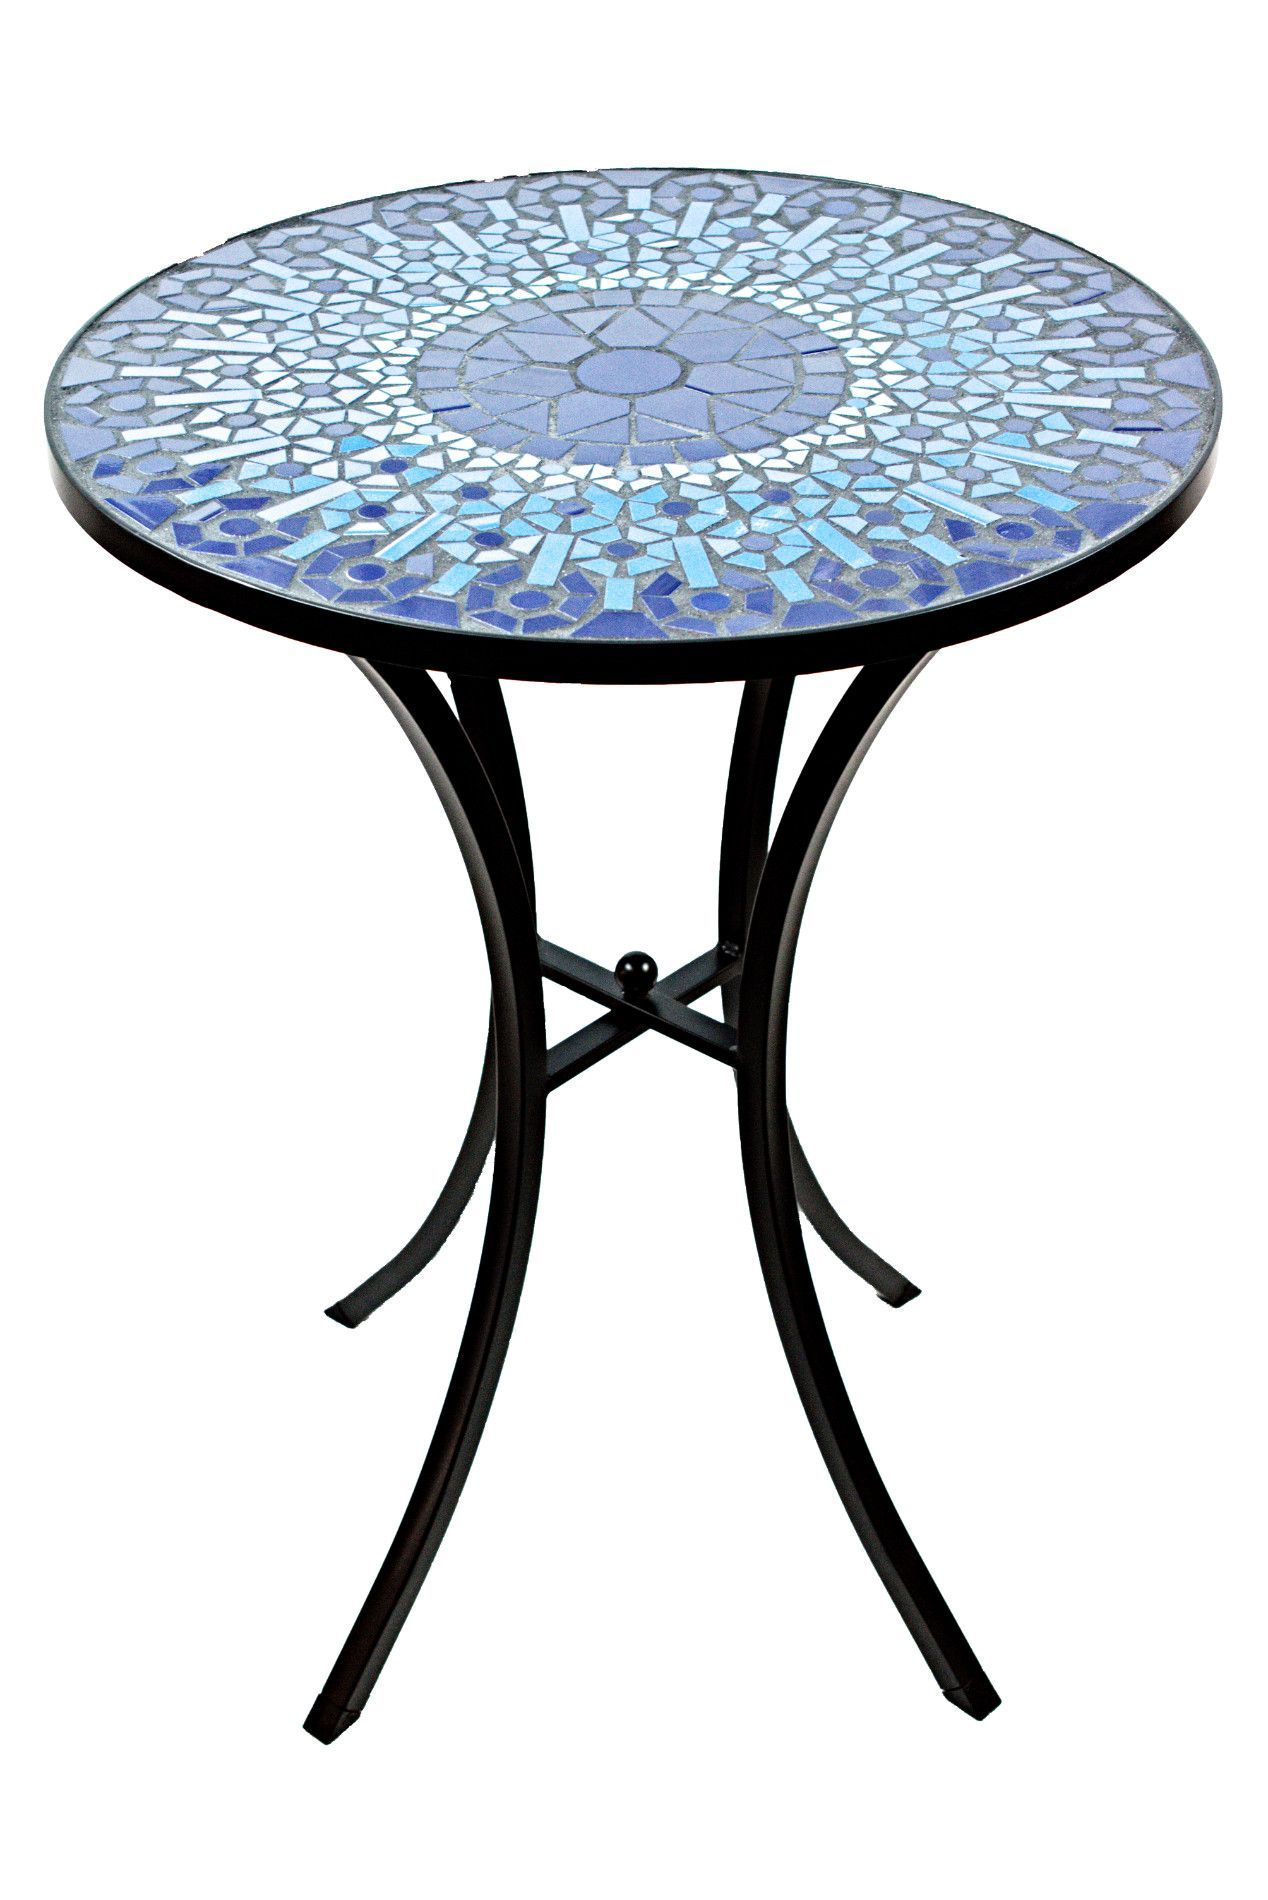 verazze mosaic accent table pier imports chrome tile patterns outdoor decor and mosaics kohls cordless battery lamp small low round ikea dining sets acrylic coffee tray set three